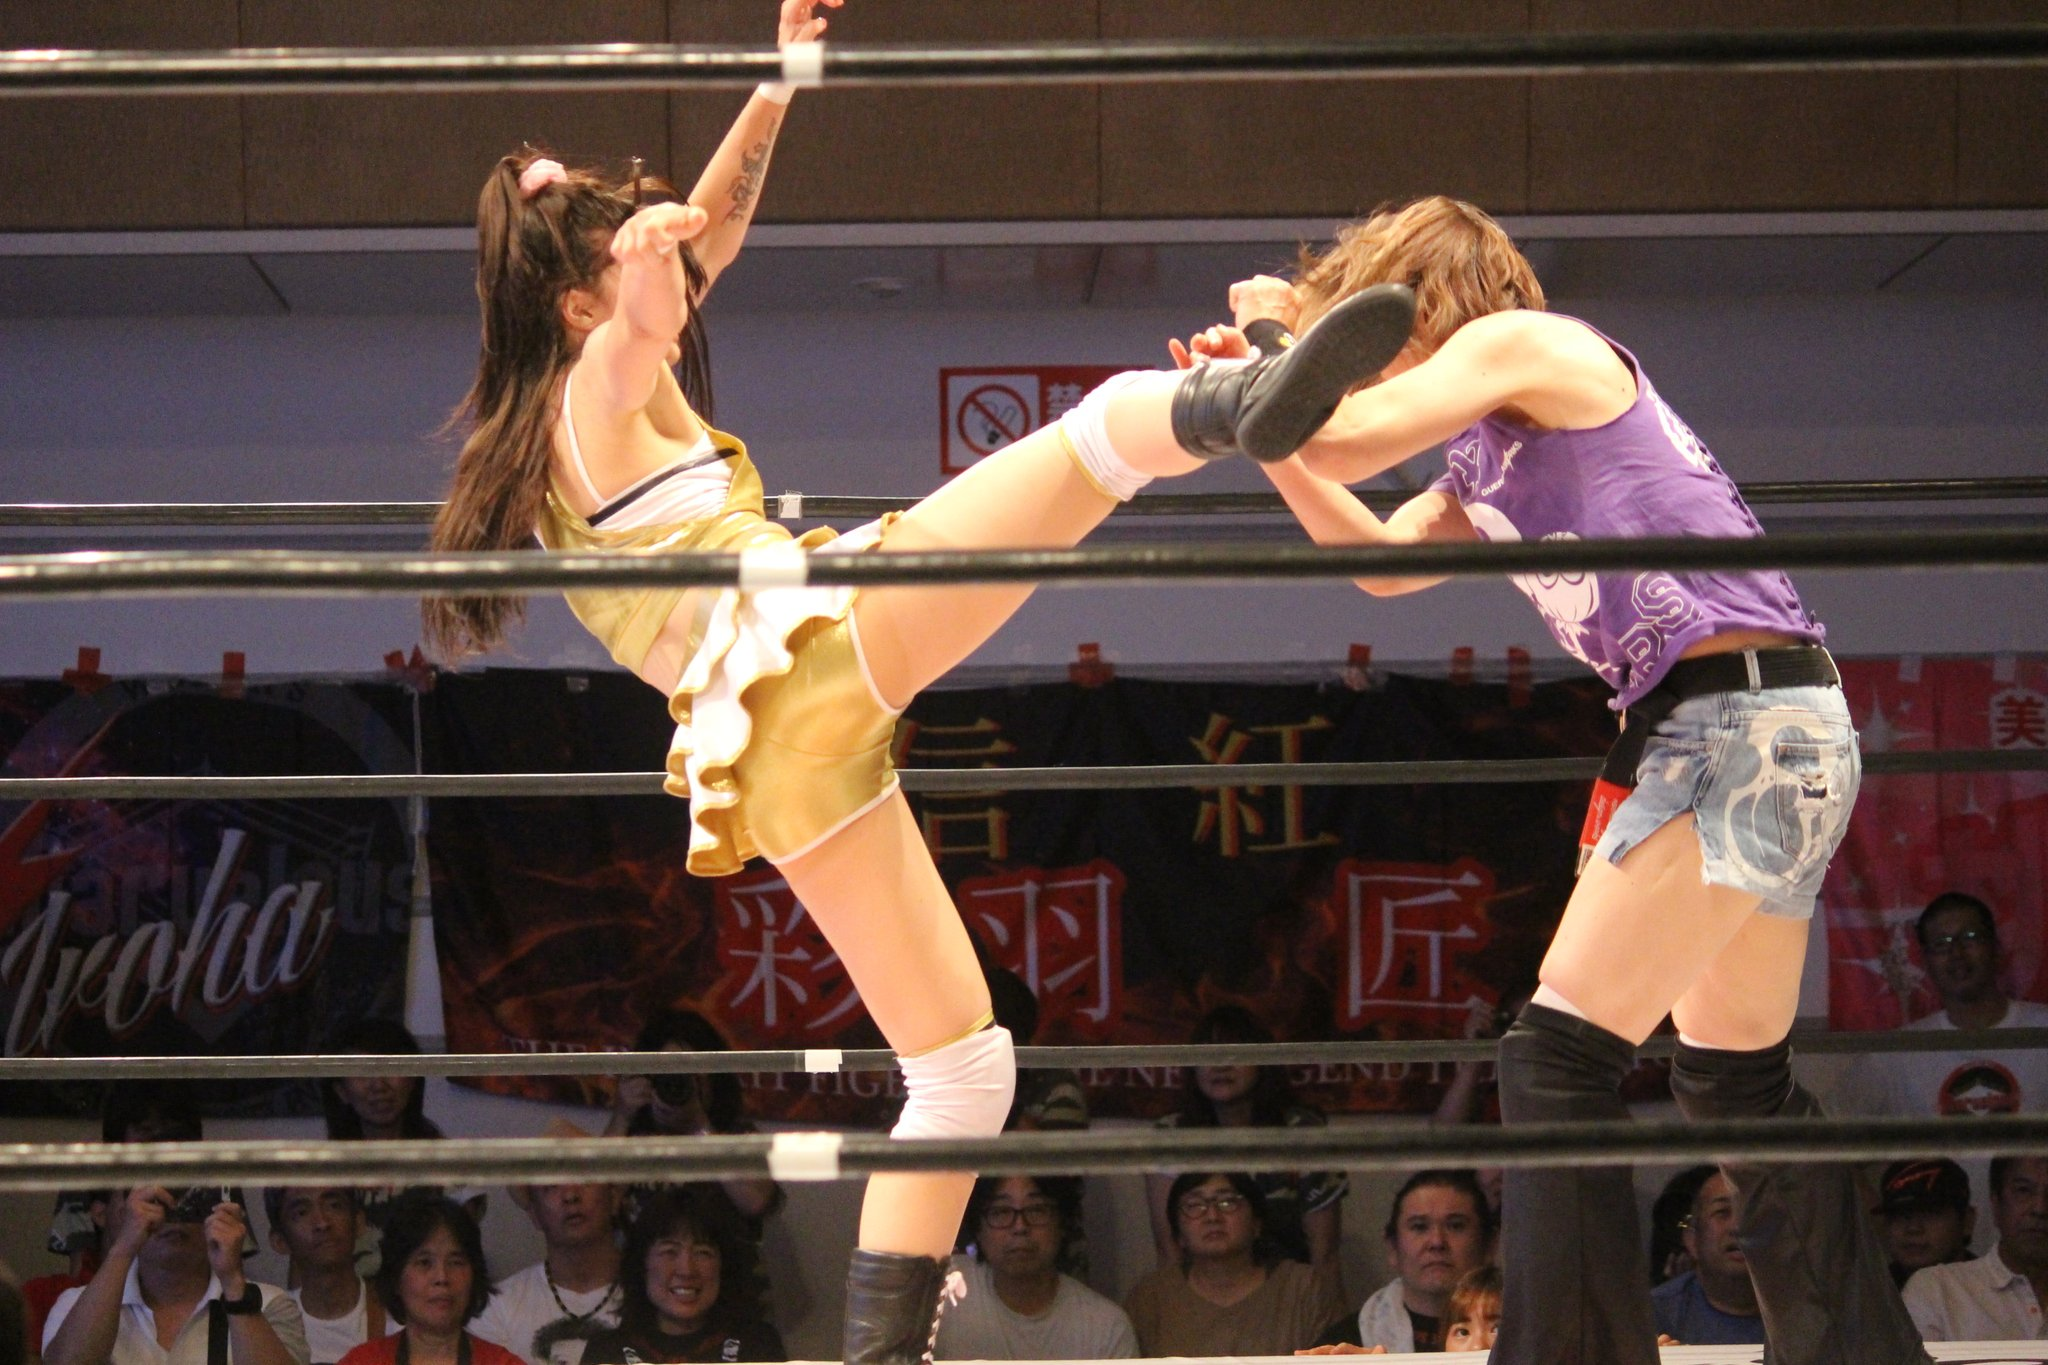 Official Japanese Wrestling Discussion Thread - Page 310